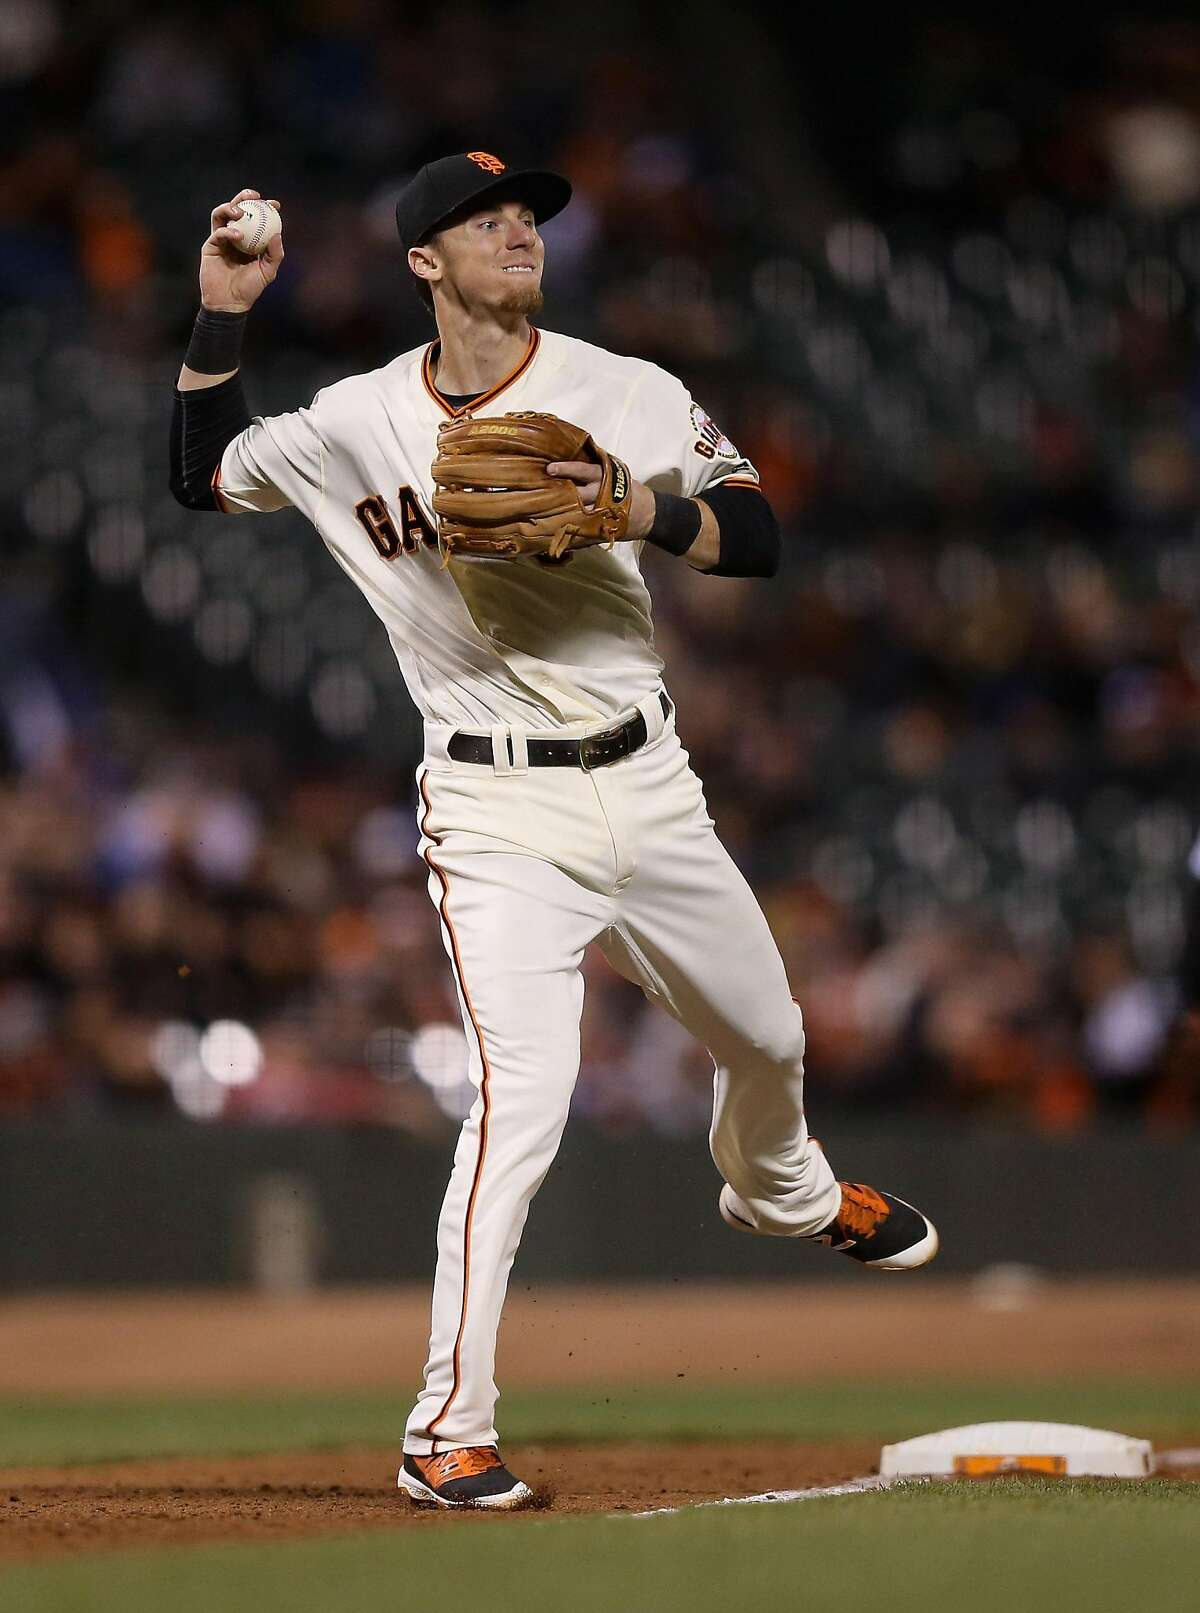 SAN FRANCISCO, CA - MAY 09: Matt Duffy #5 of the San Francisco Giants throws out Jose Bautista #19 of the Toronto Blue Jays in the ninth inning at AT&T Park on May 09, 2016 in San Francisco, California. (Photo by Ezra Shaw/Getty Images)